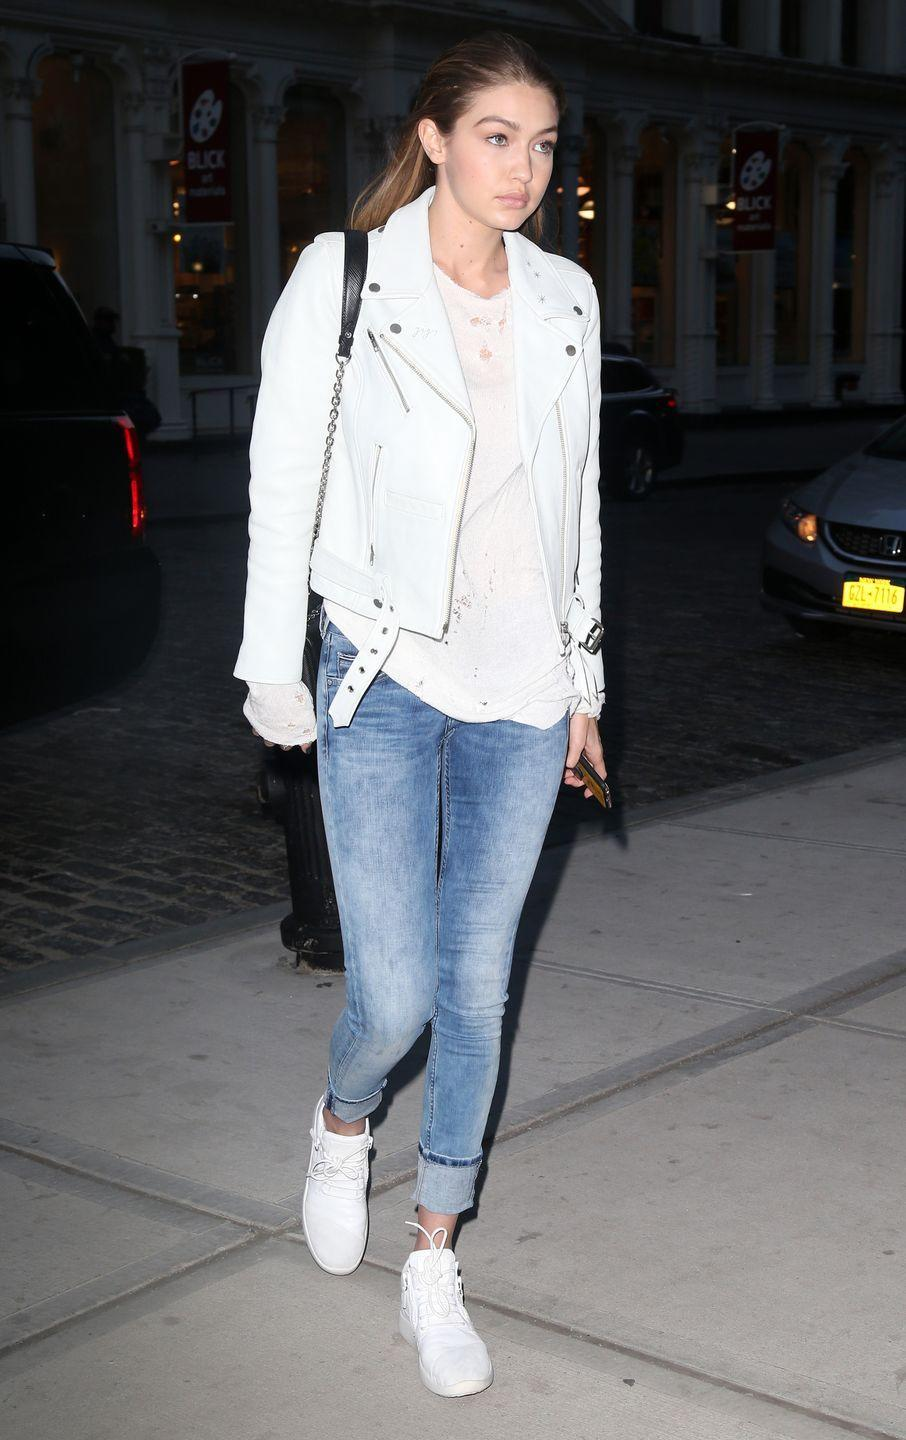 <p>Hadid brought denim and leather into spring, pairing a custom Neuw leather jacket with lighter hues and bright white kicks. </p>